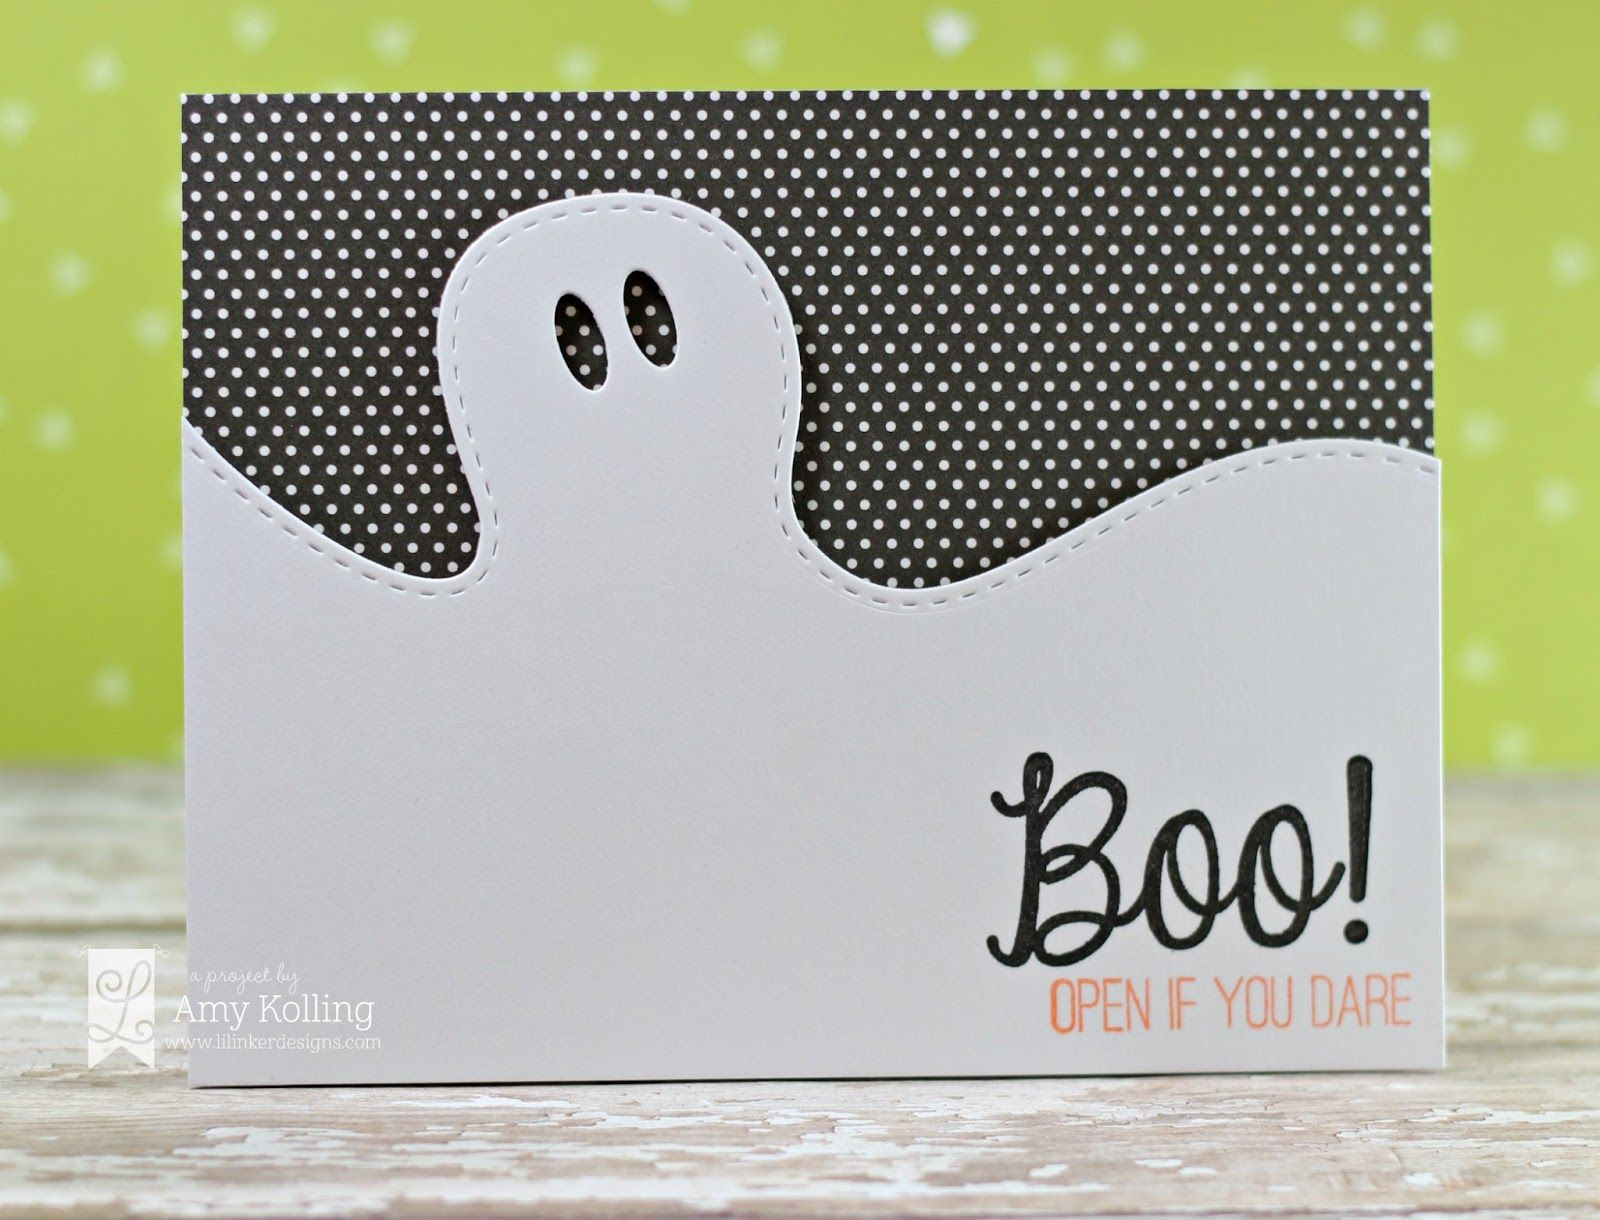 Halloween Card Making Ideas Part - 21: Handmade Halloween Card From Lilu0027 Inker Designs ... Clean And Simple .